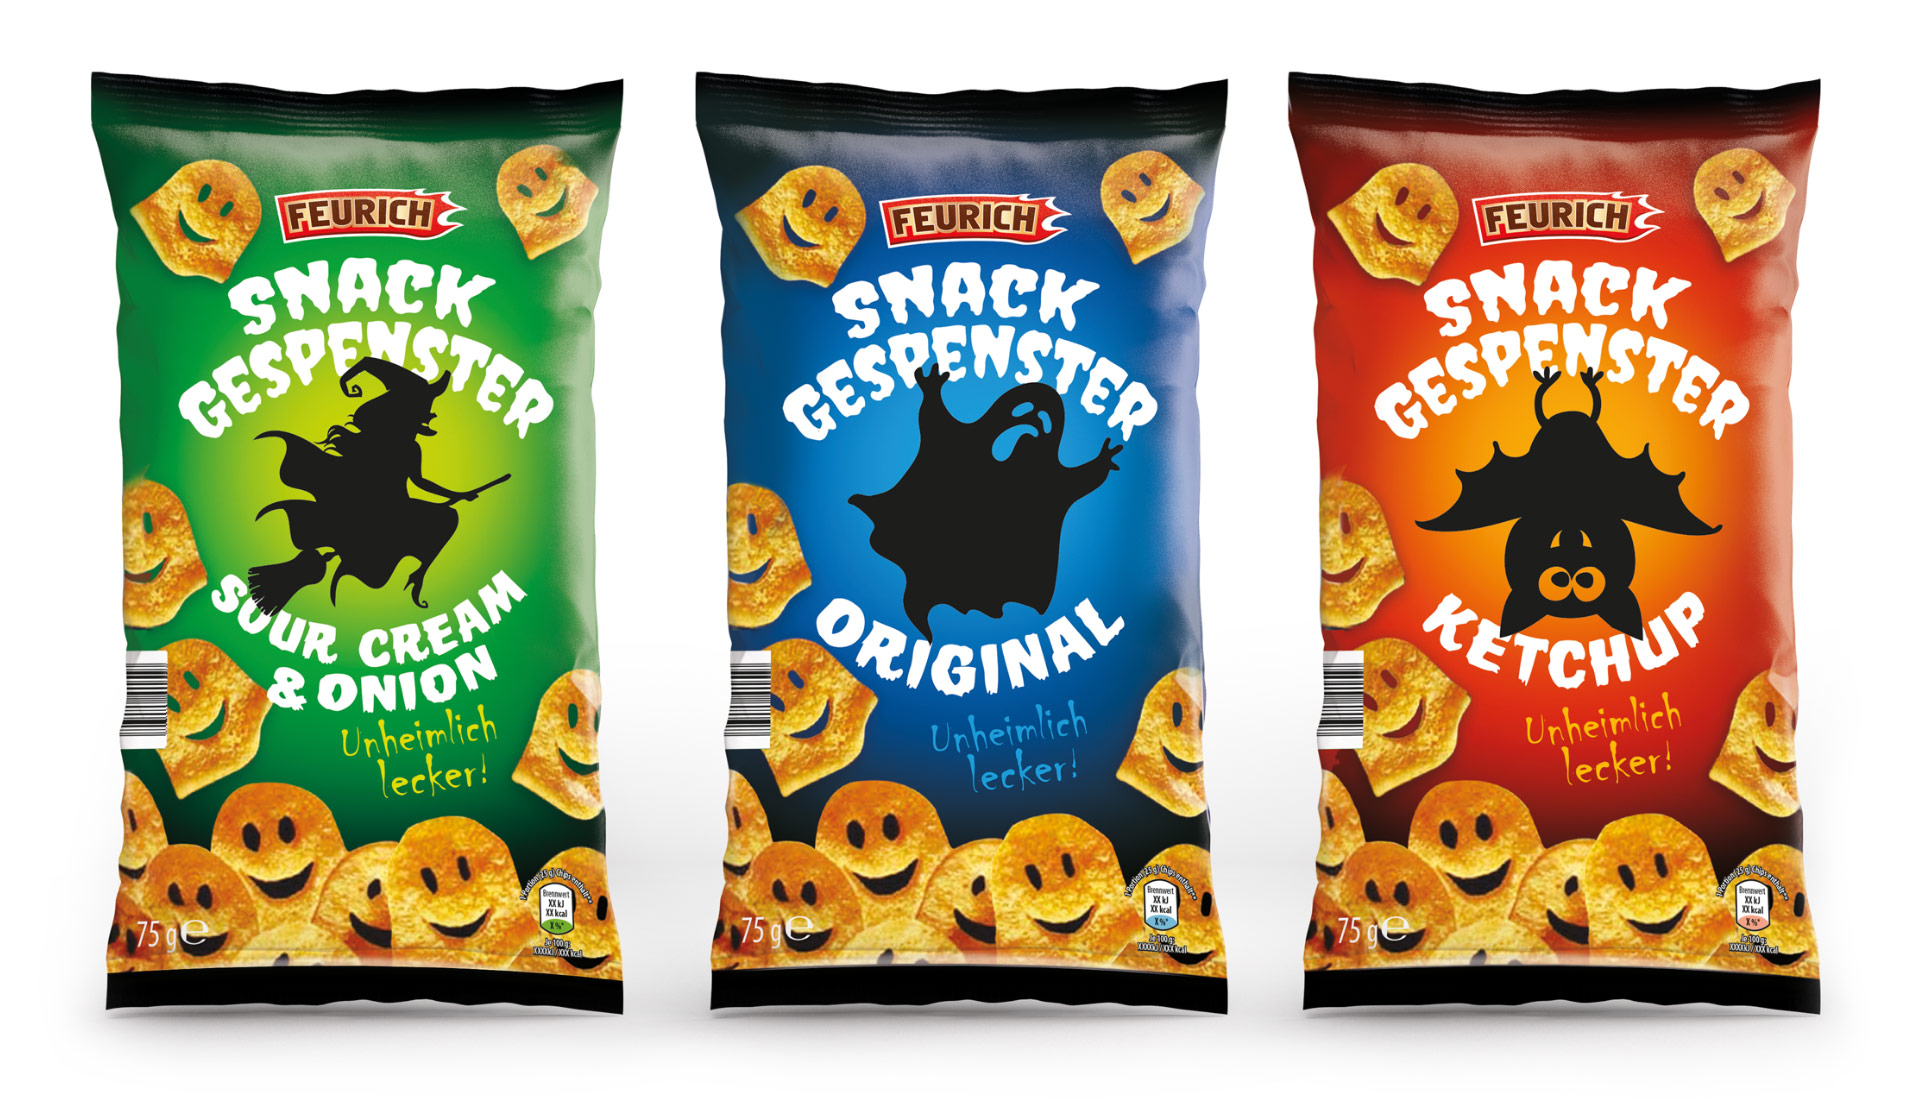 Feurich Crisp Packet Design By Louise Russell Design